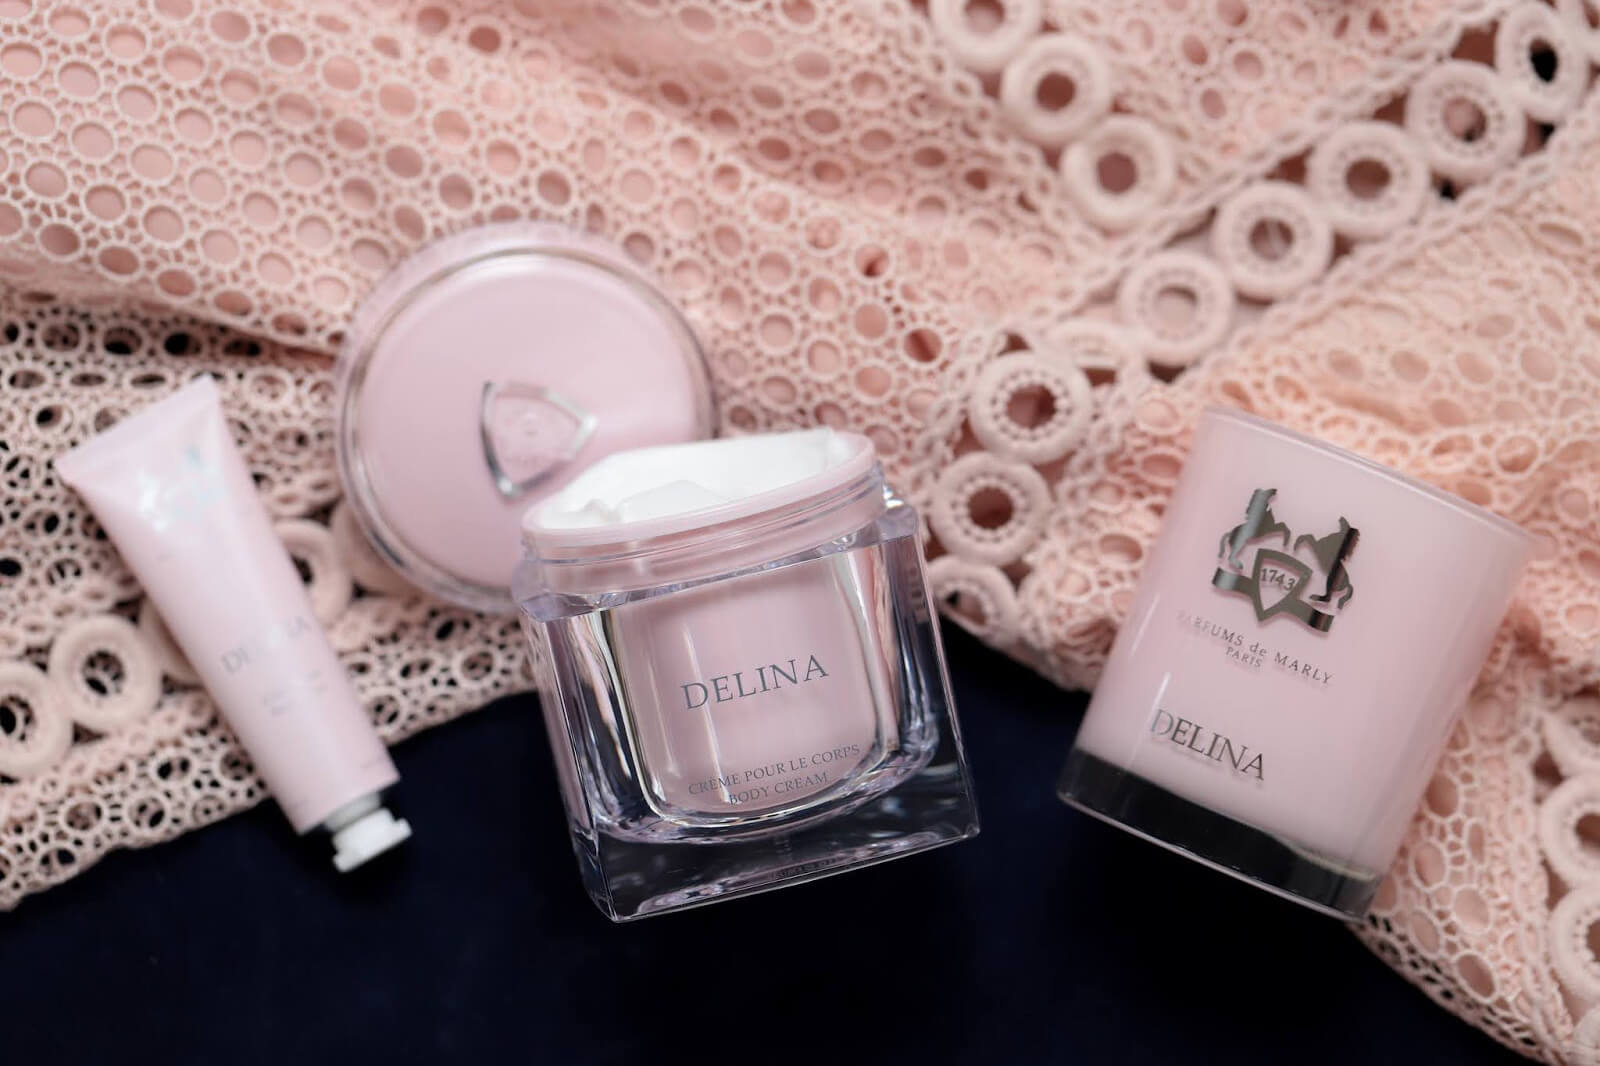 Delina Parfums de Marly Soins Corps Bougie revue